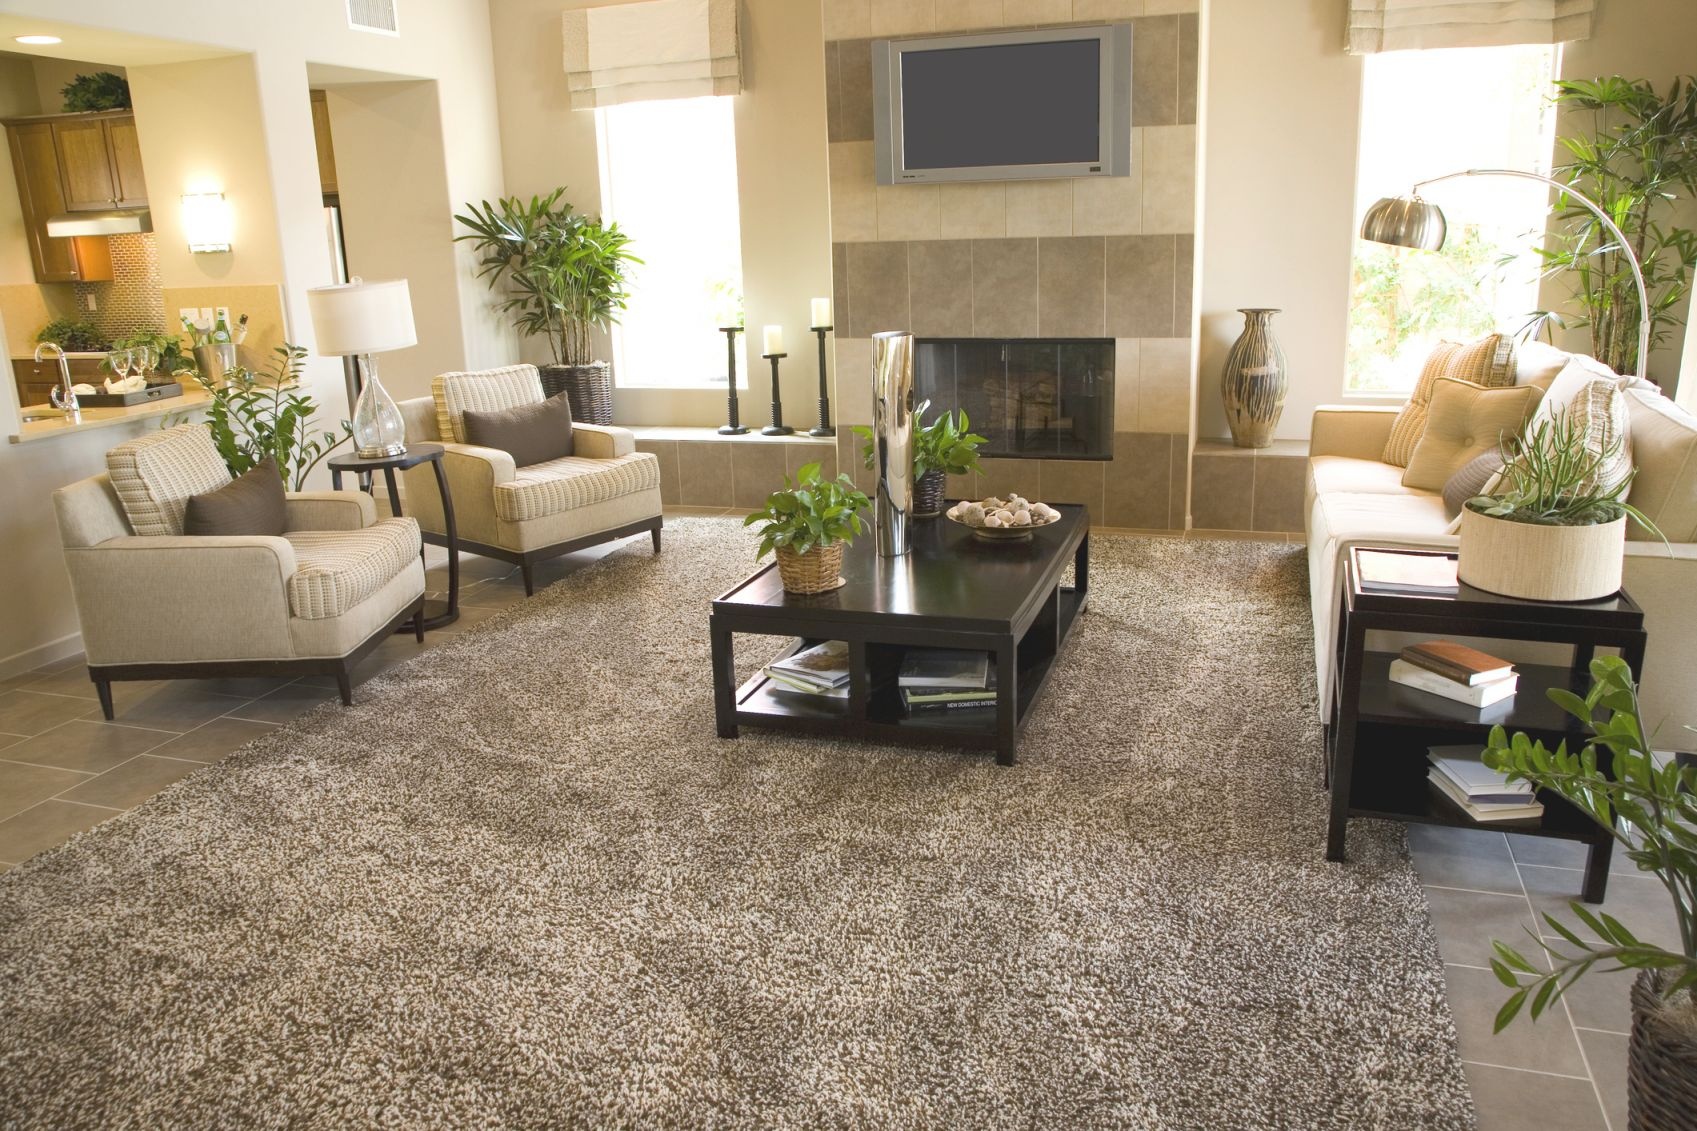 Where To Find Extra Large Area Rugs | Lovetoknow with regard to Big Area Rugs For Living Room